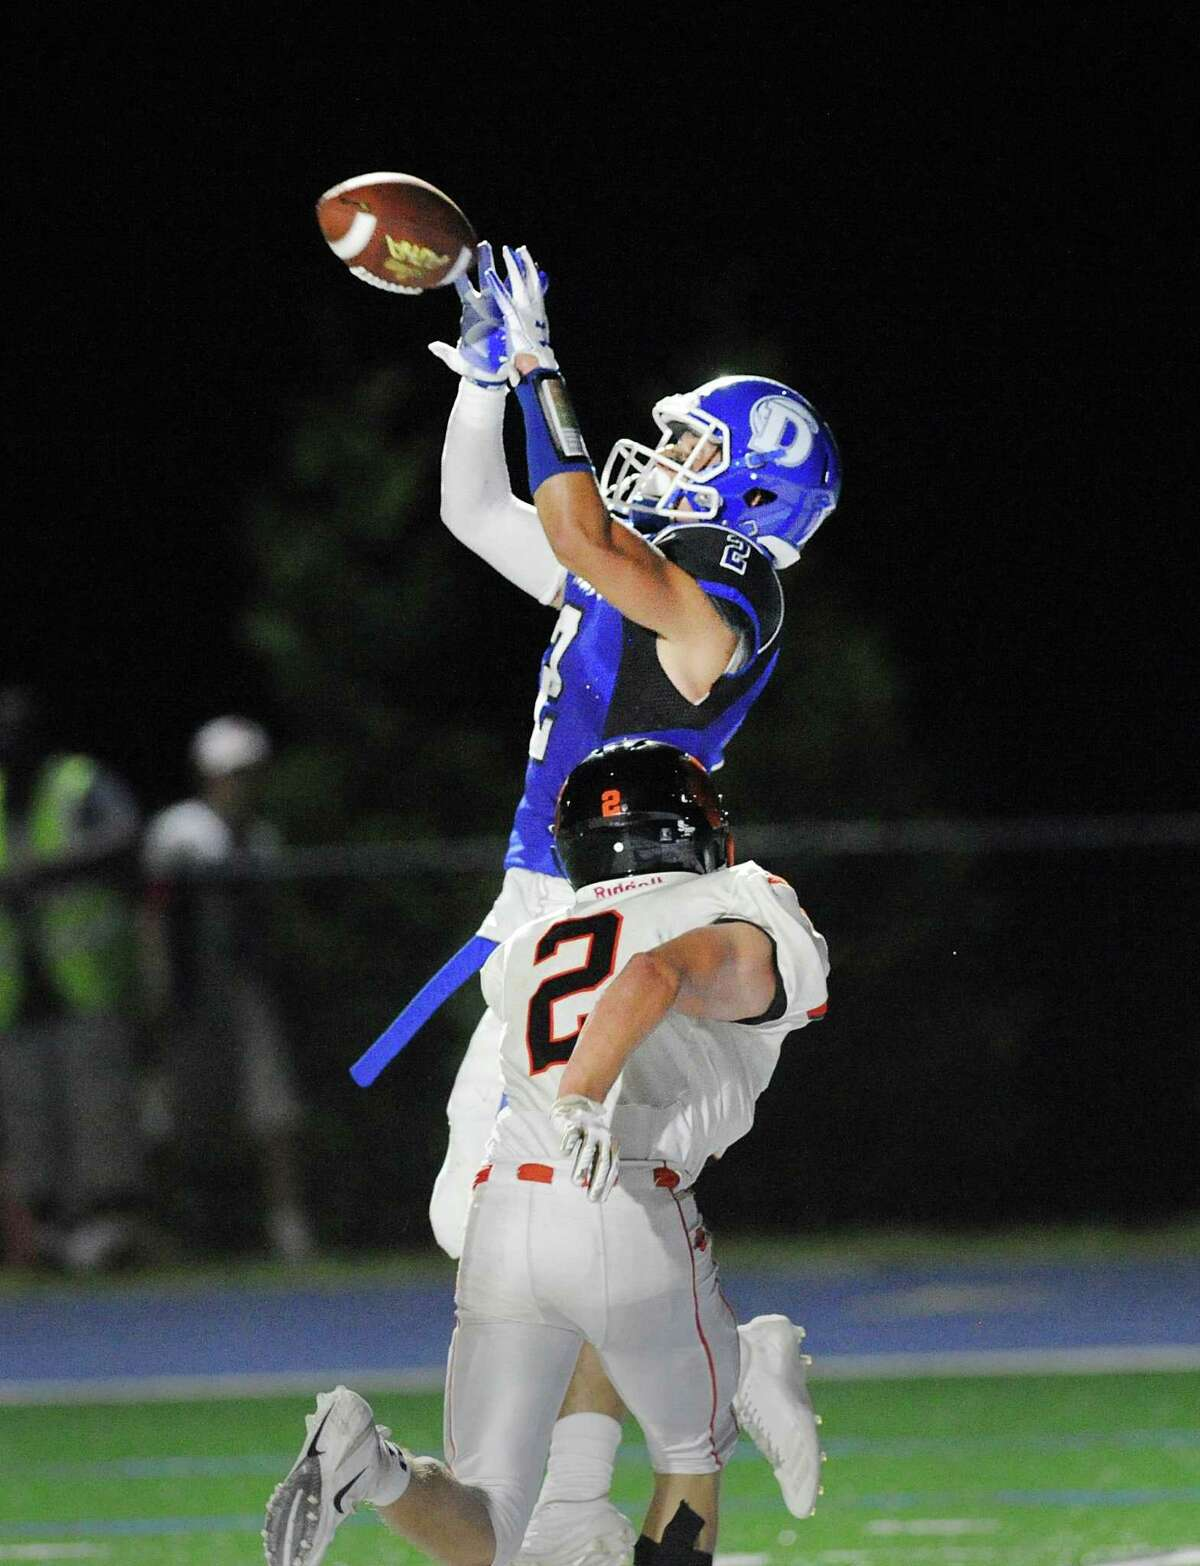 Darien receiver Will Rolapp jumps over Ridgefield defender Evan Wein for a second- quarter touchdown reception from Cooper Hancock during the season opener for both teams Friday night in Darien. Go to www.stamford advocate.com for game story.